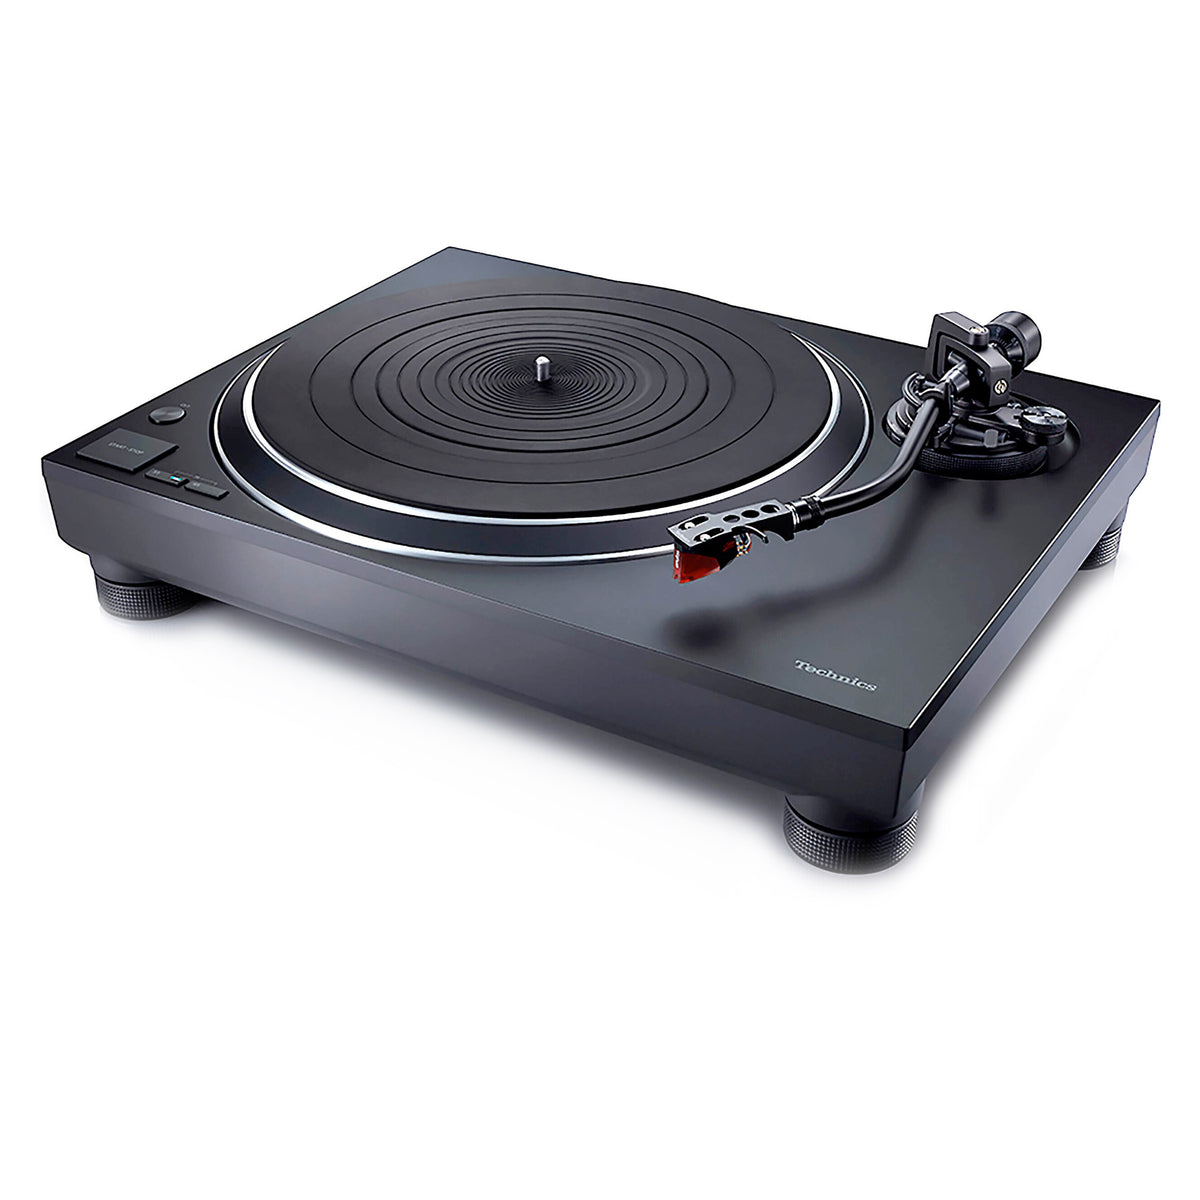 Technics: SL-1500C-K Turntable - Black